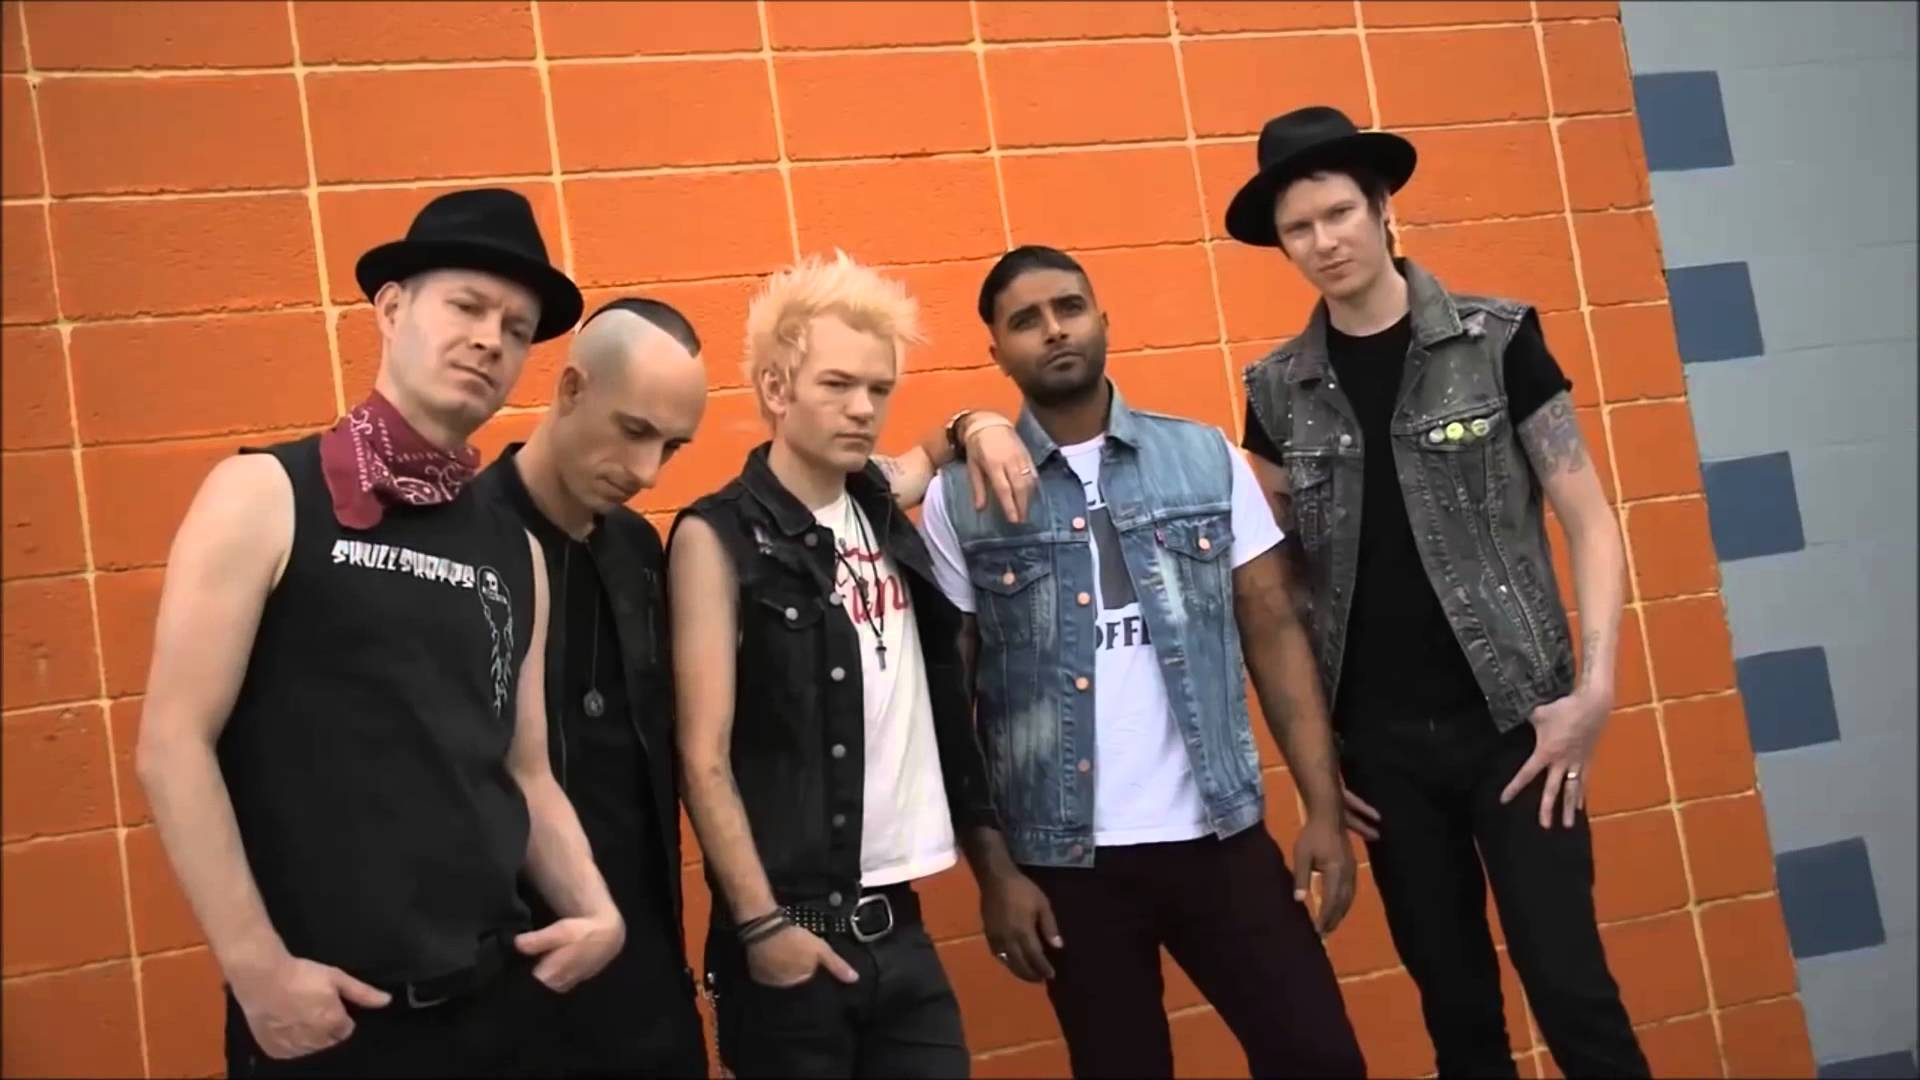 Sum 41 Backgrounds